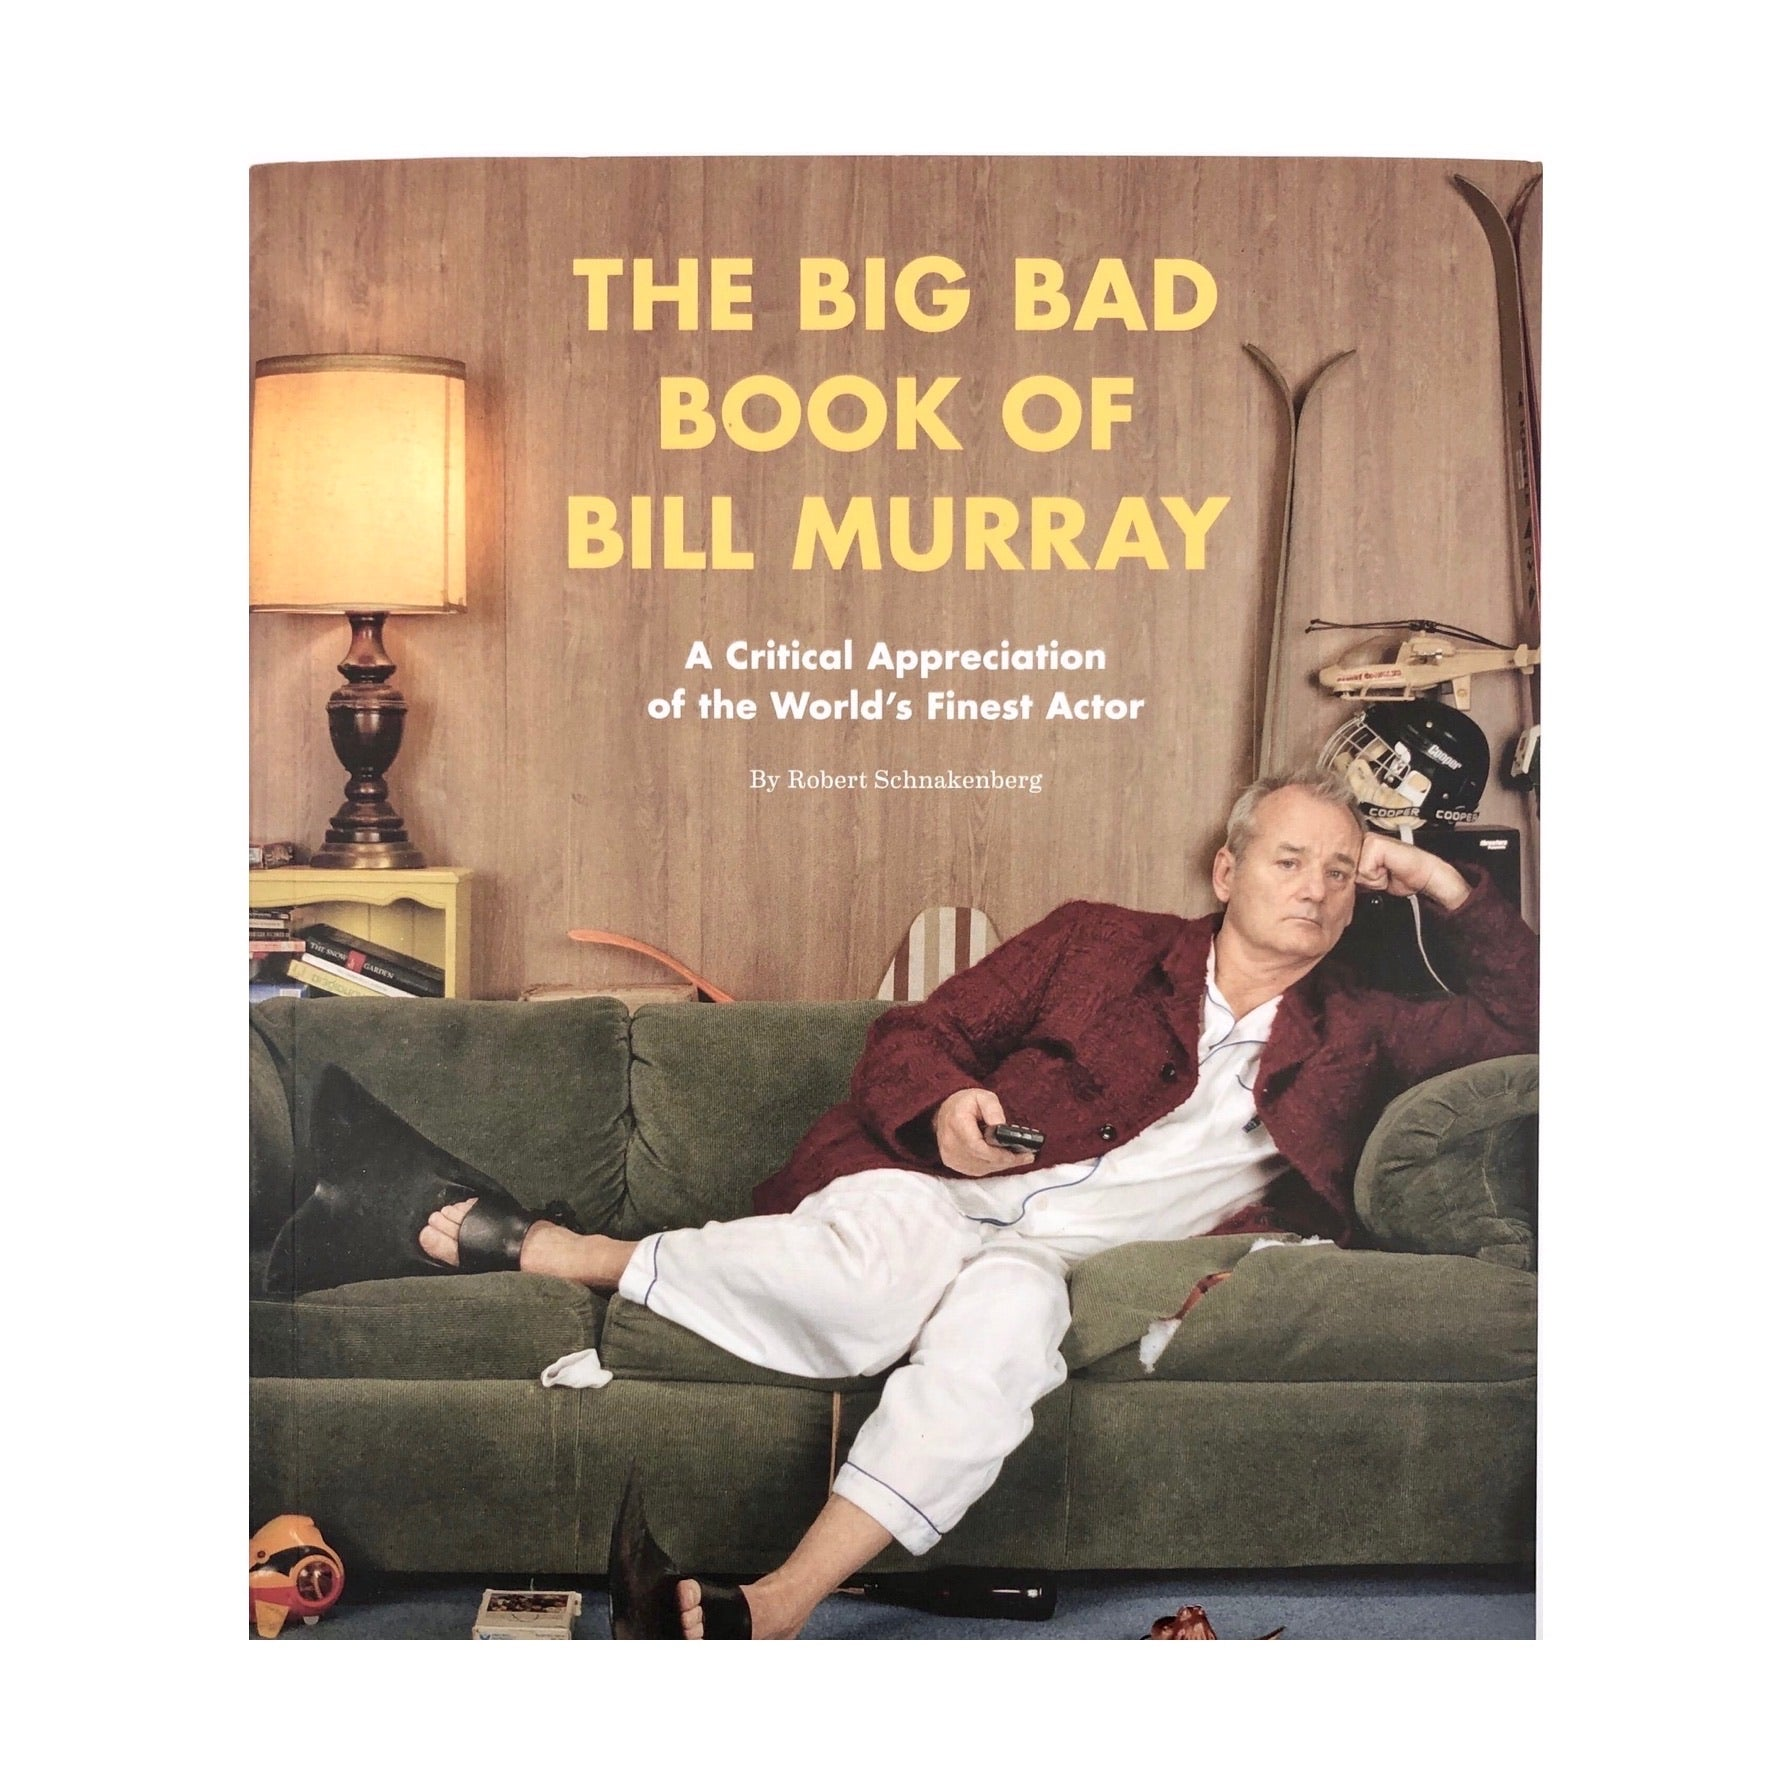 THE BIG BAD BOOK OF BILL MURRAY BOOK